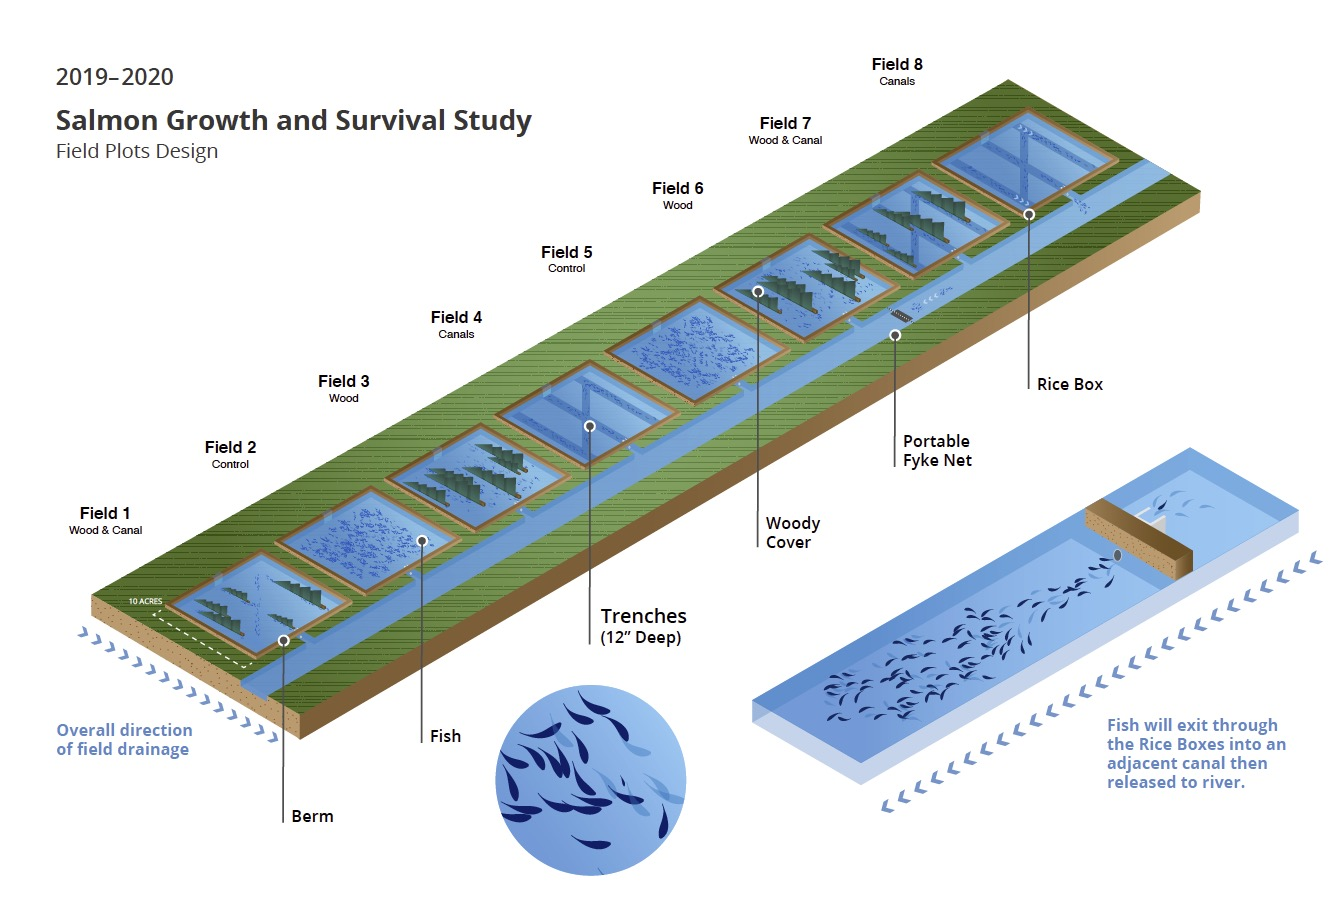 Salmon growth and survival study diagram